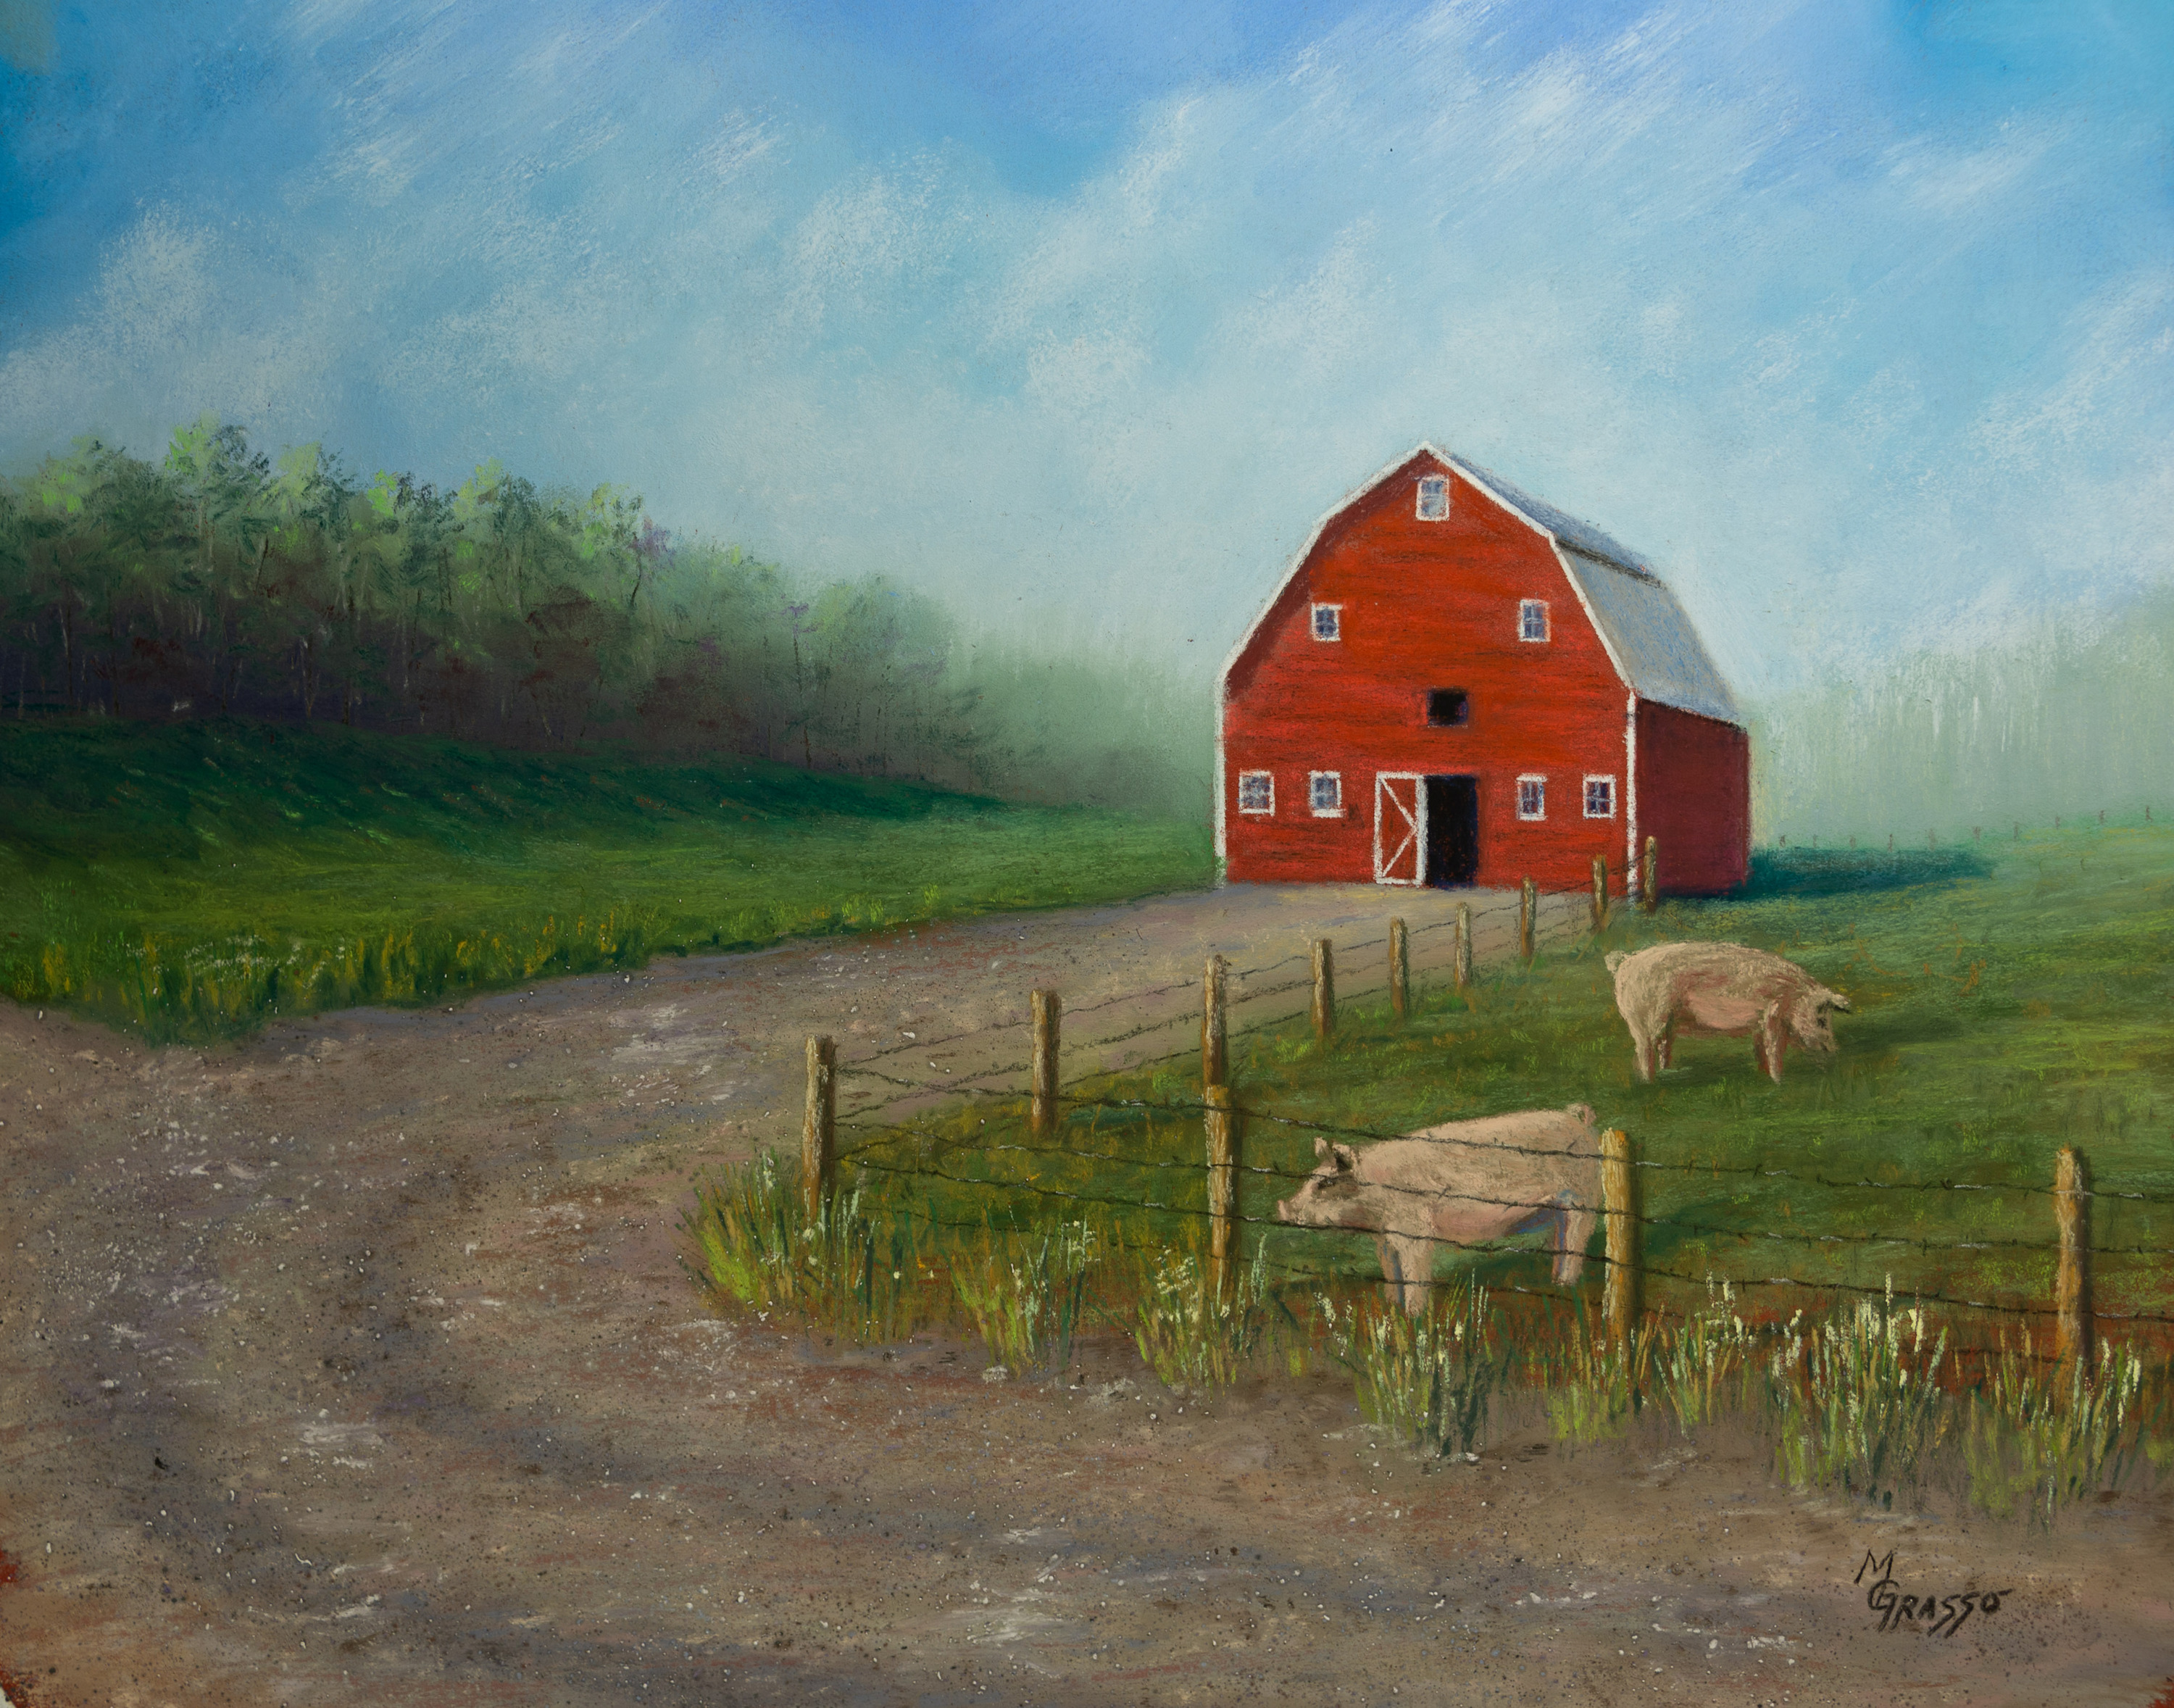 Red barn with pigs sm gjxgm4